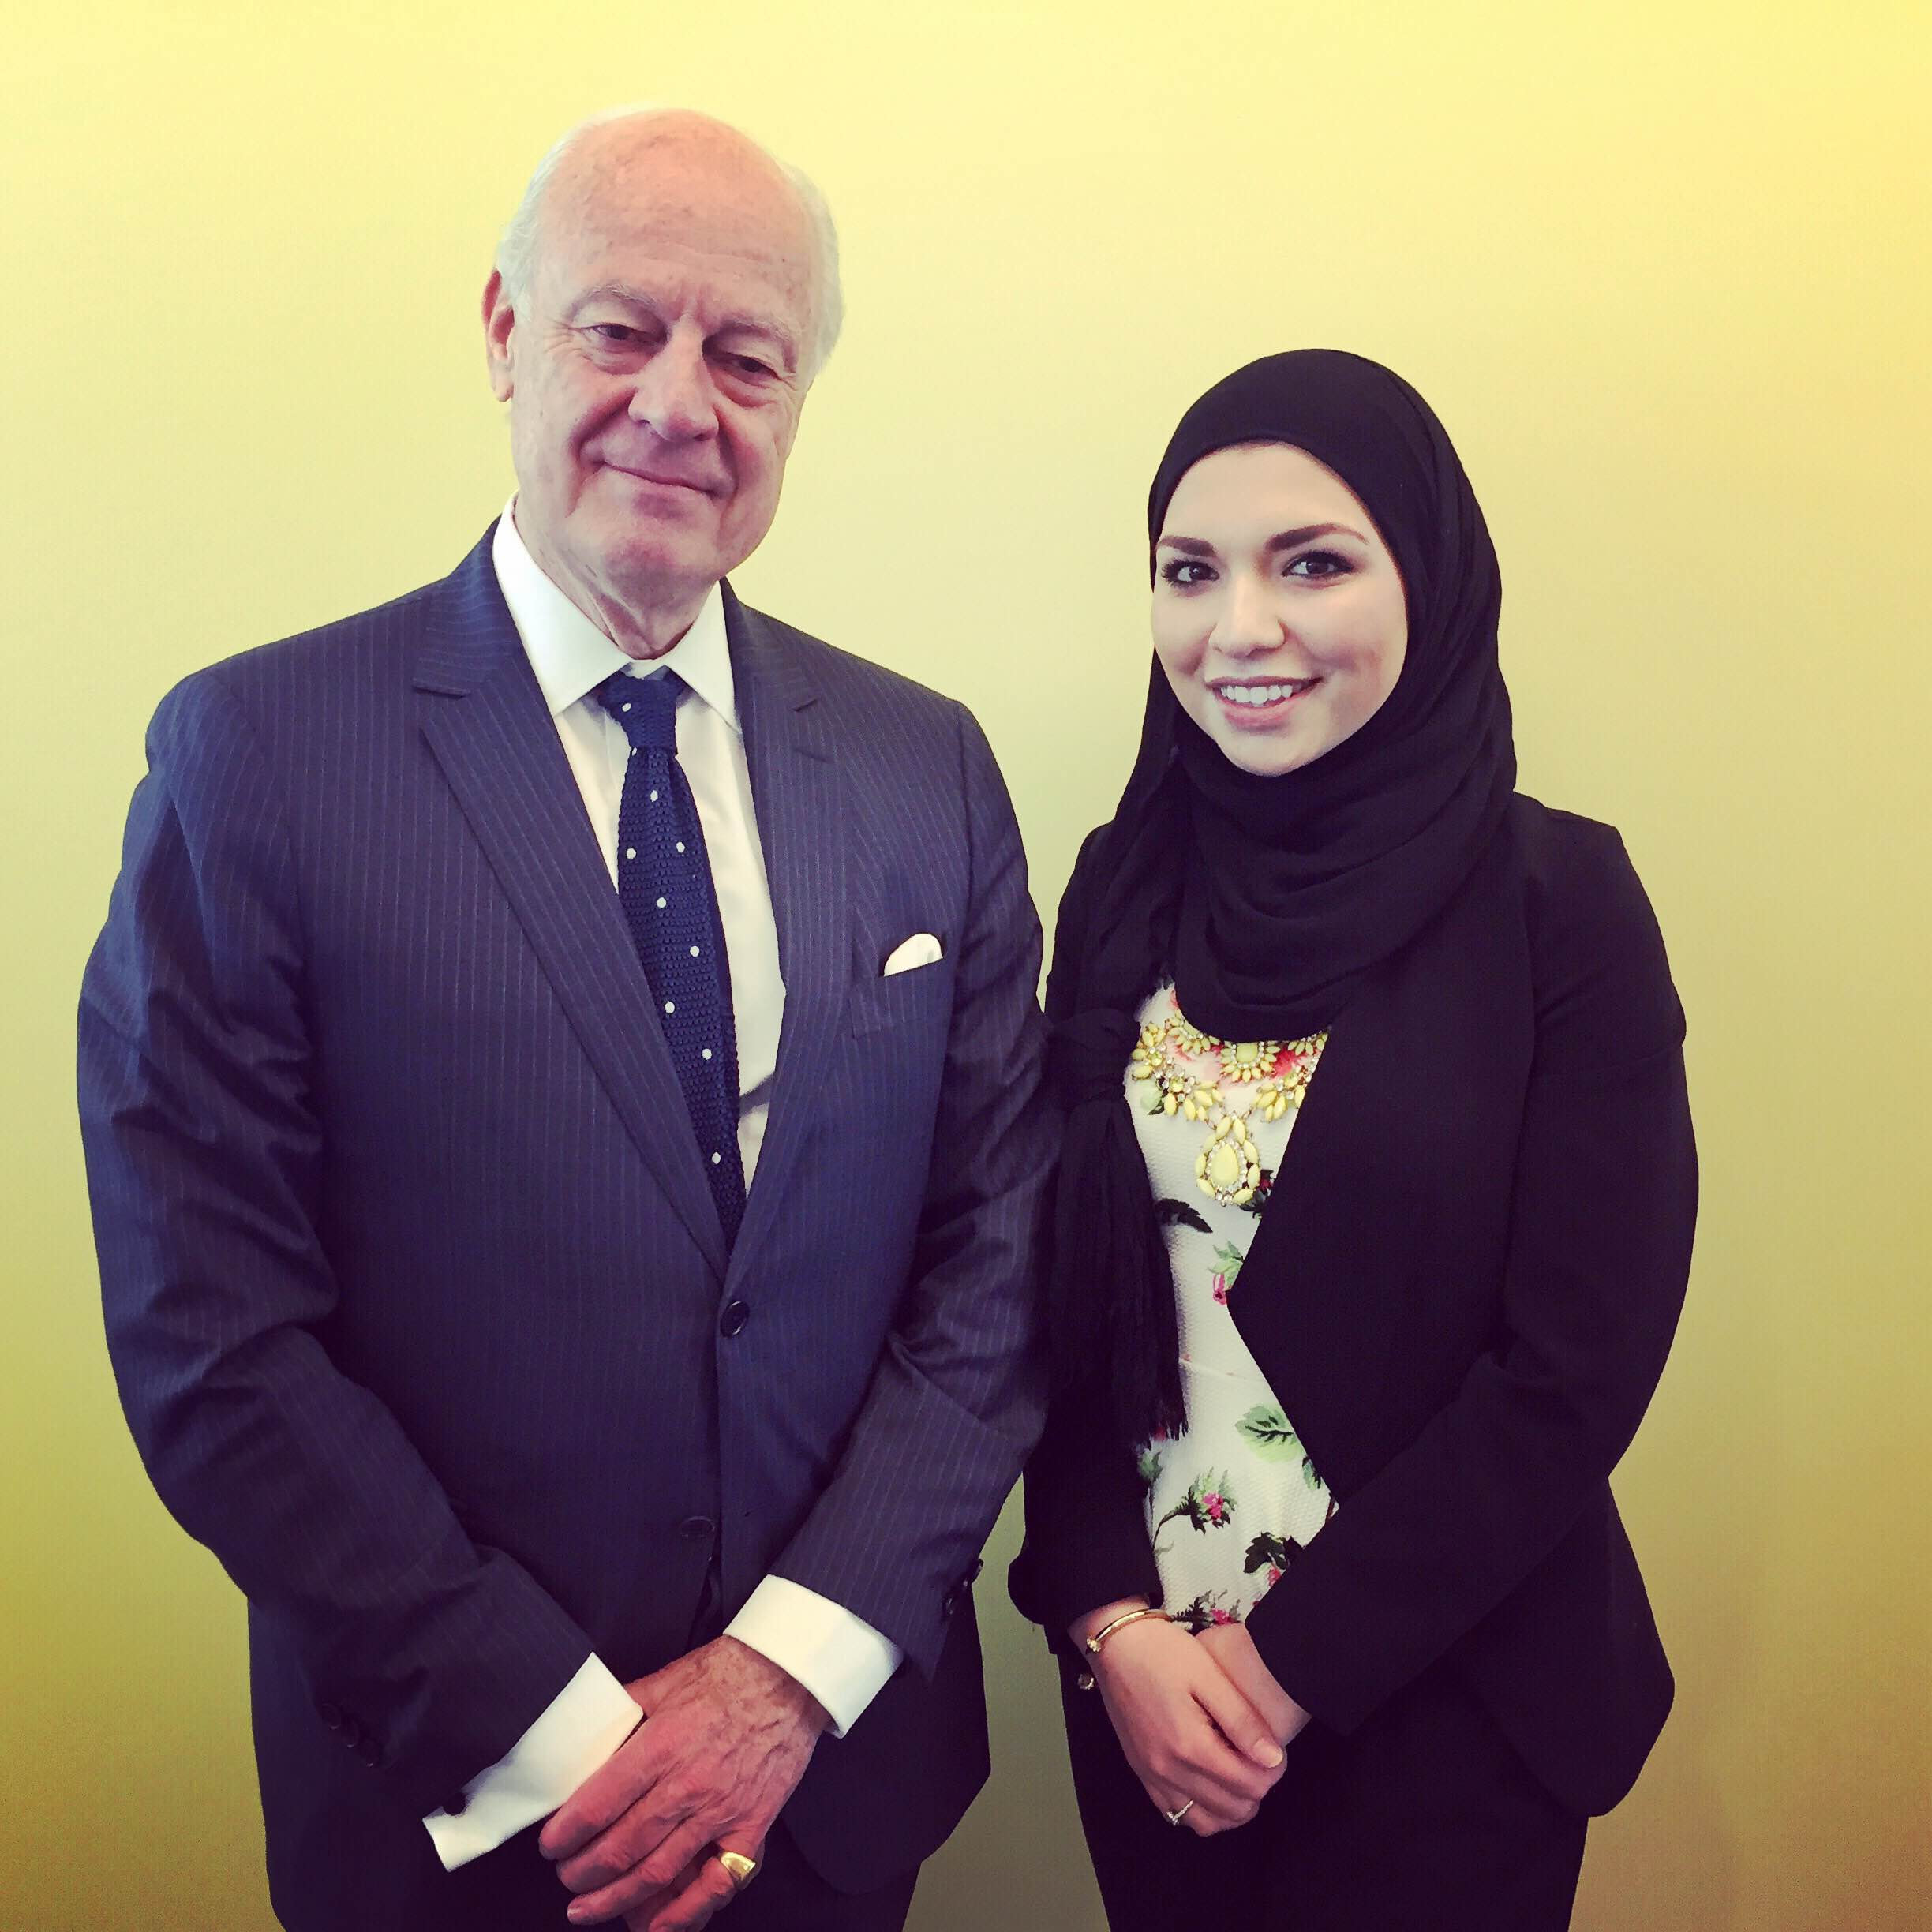 Advocacy and Outreach Coordinator Meets with UN Special Envoy de Mistura